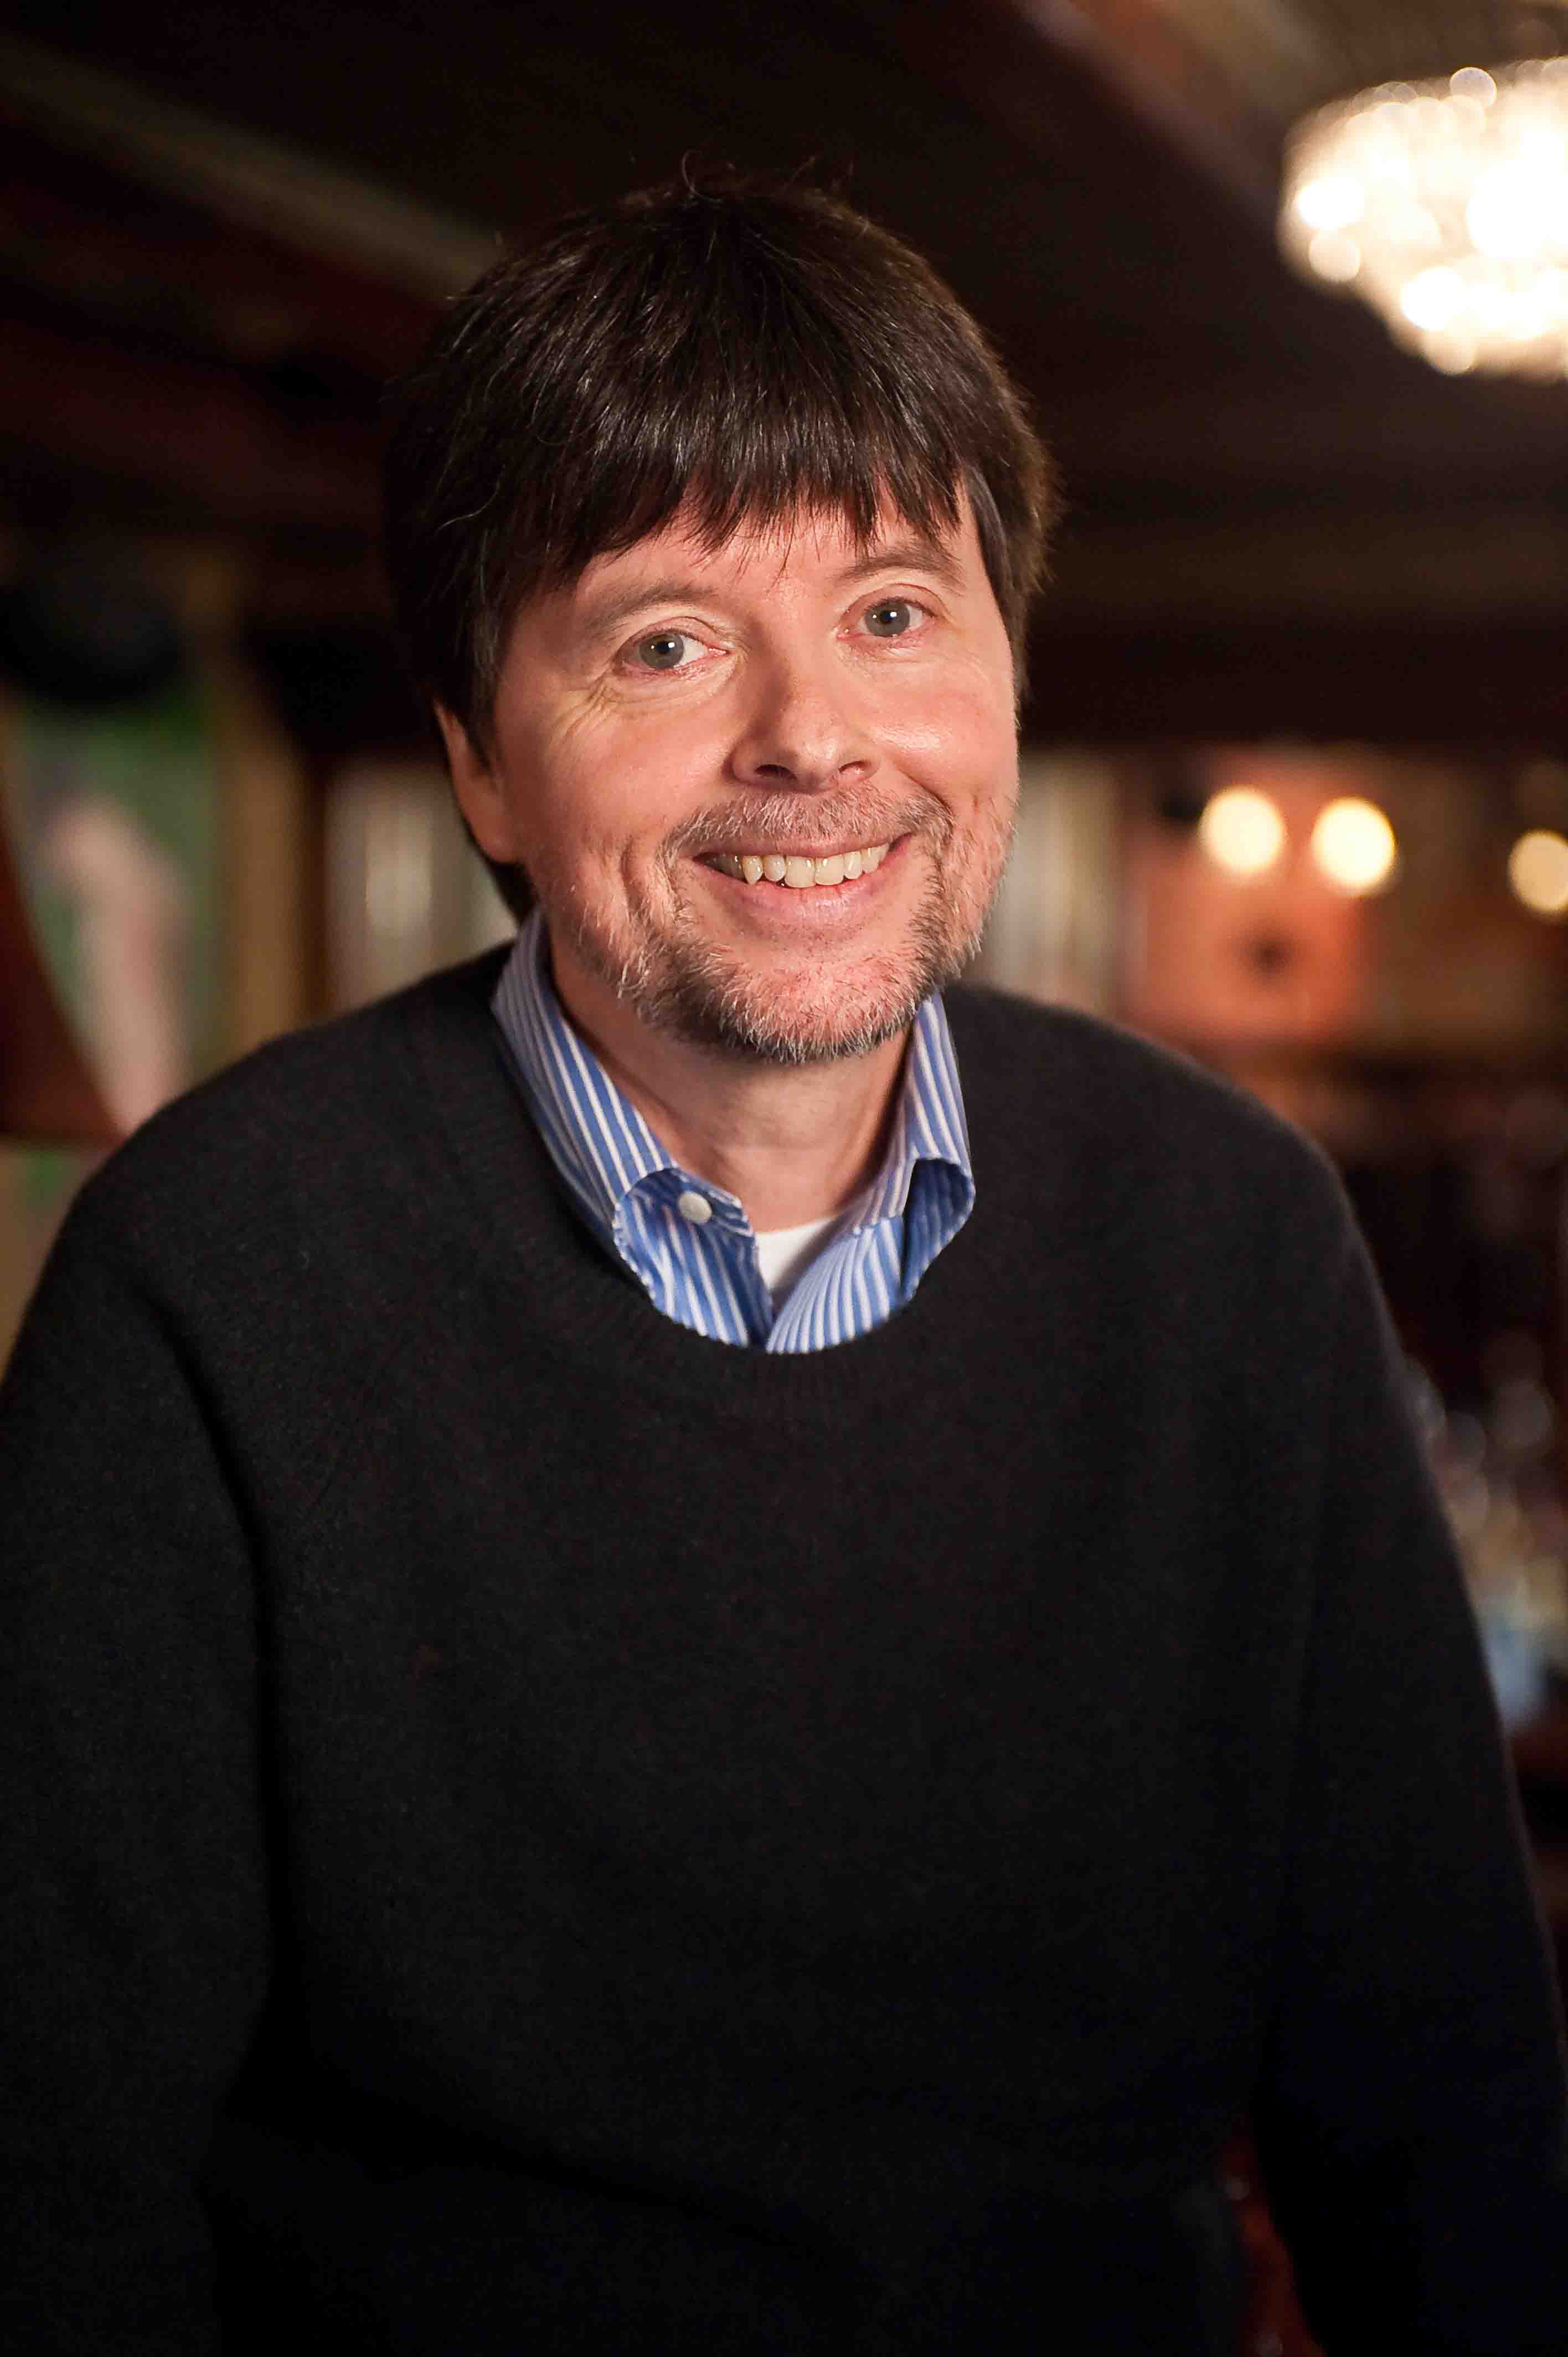 https://witherspoontnp.files.wordpress.com/2012/11/ken-burns.jpg